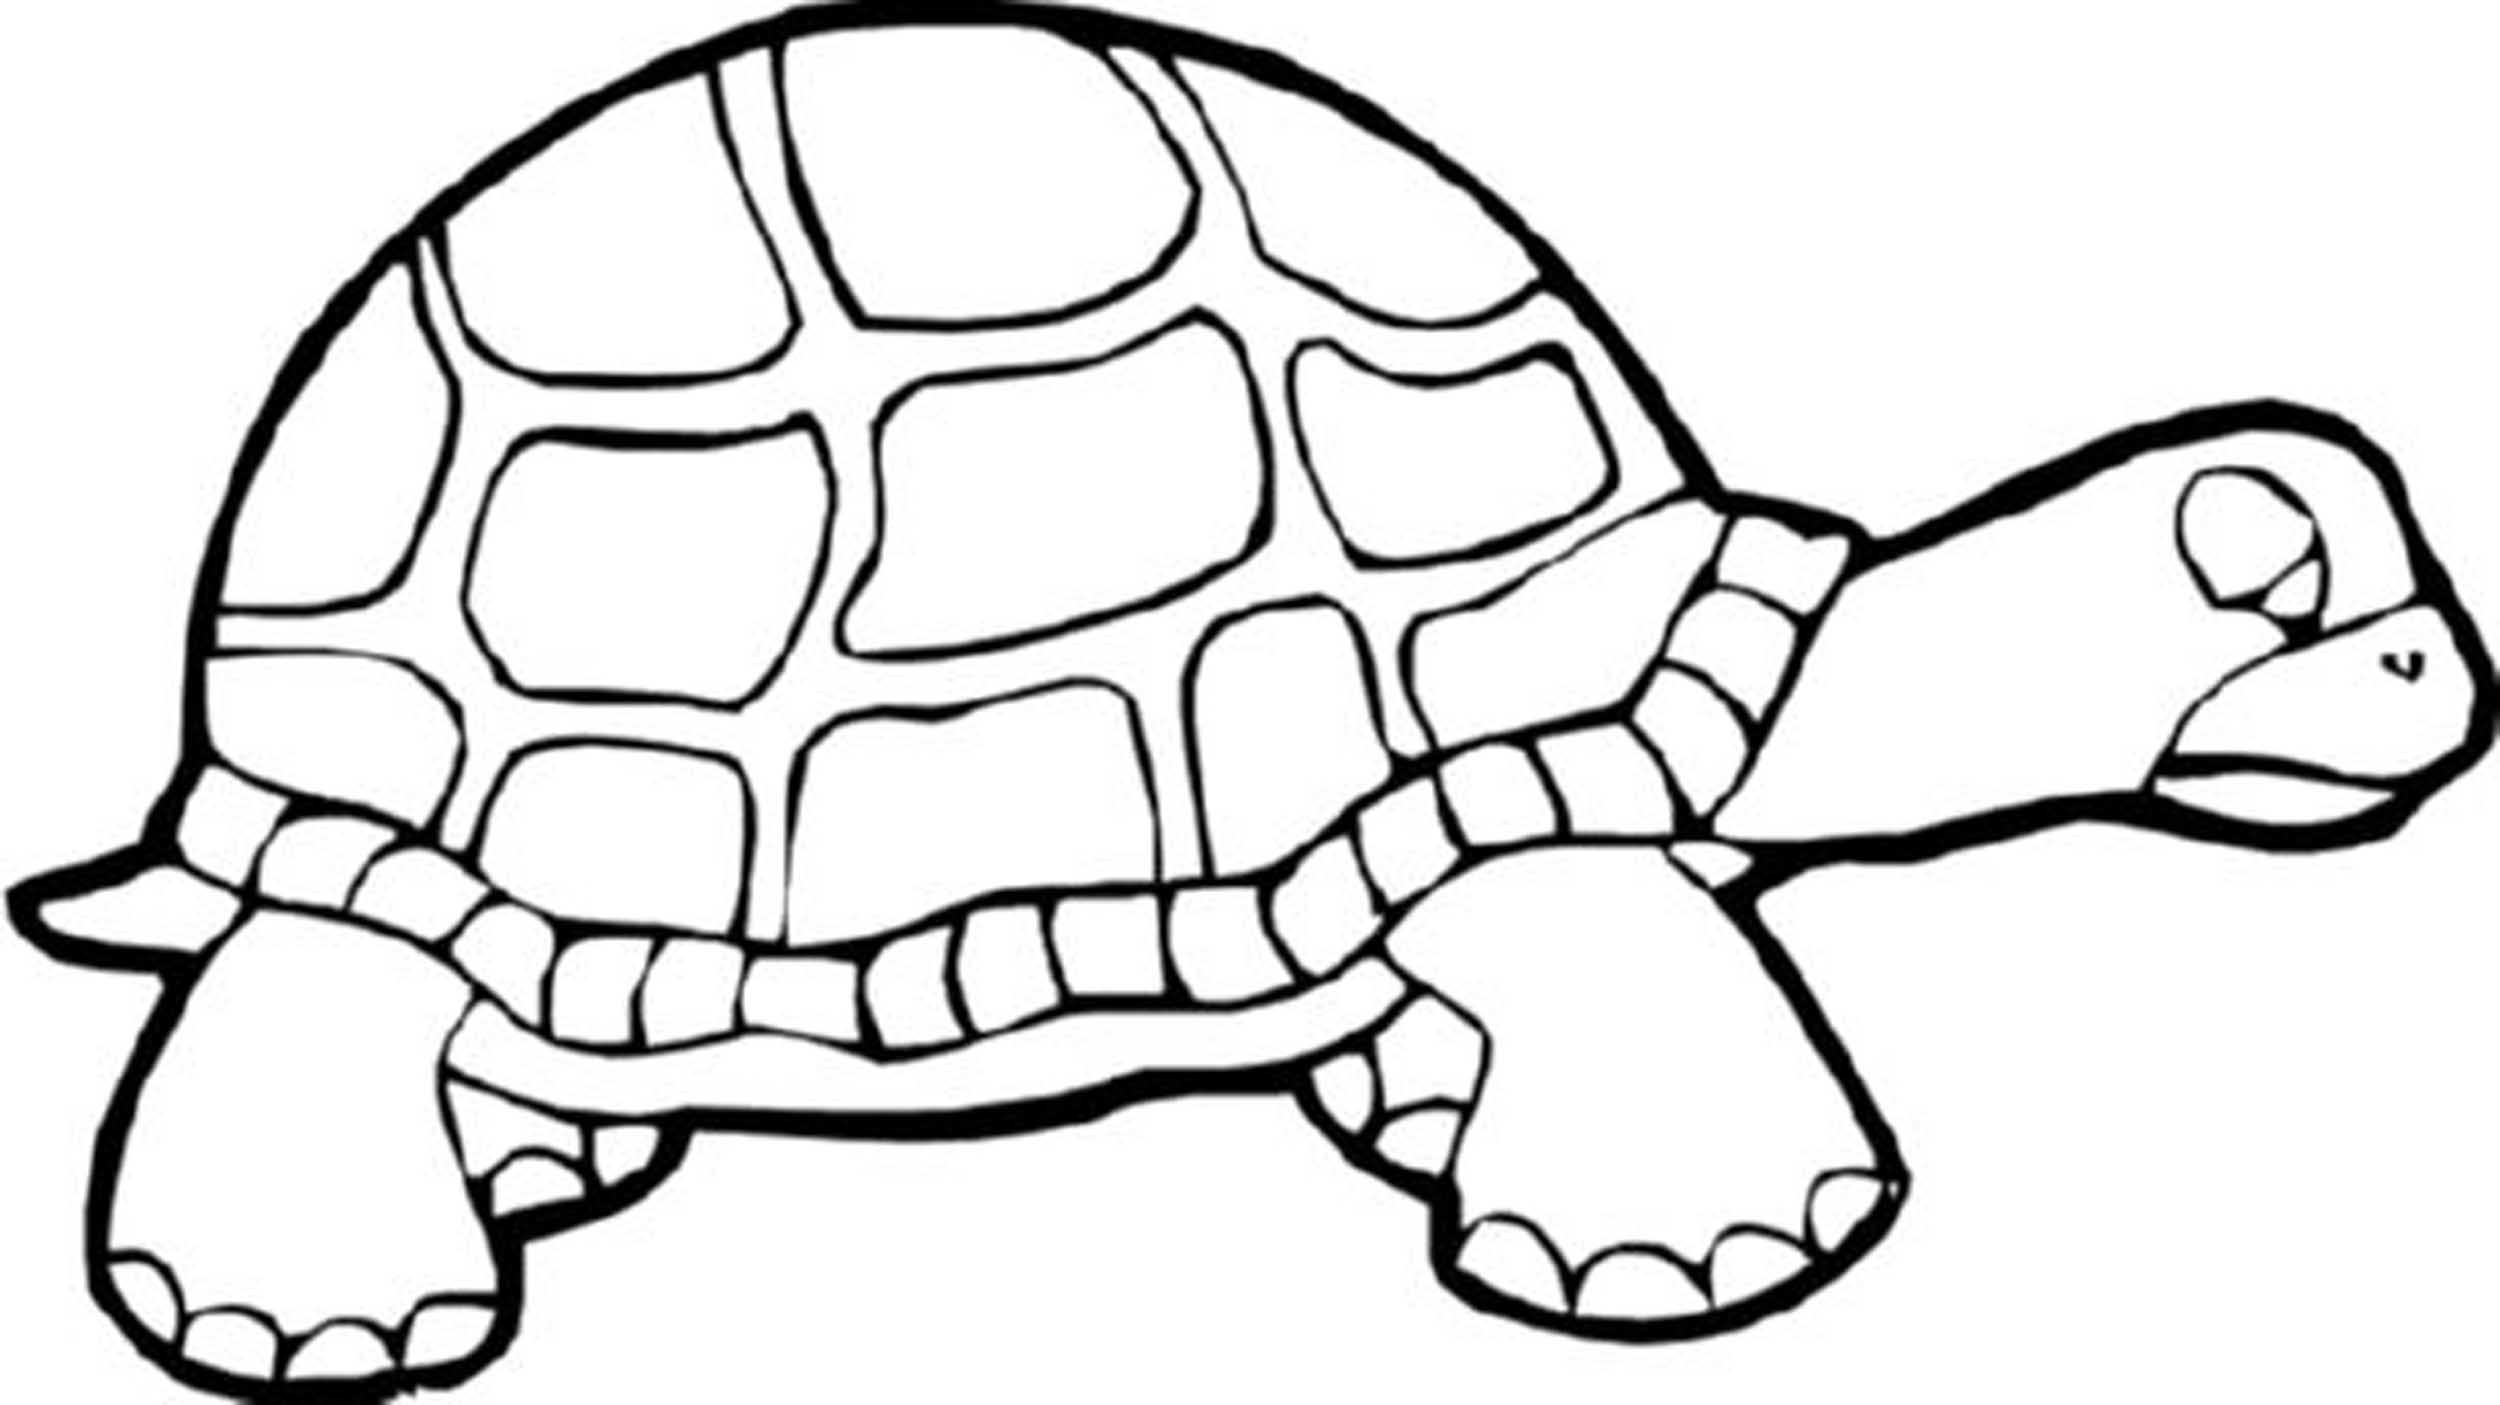 images of turtles to color cute turtle clipart clipart panda free clipart images turtles color to images of